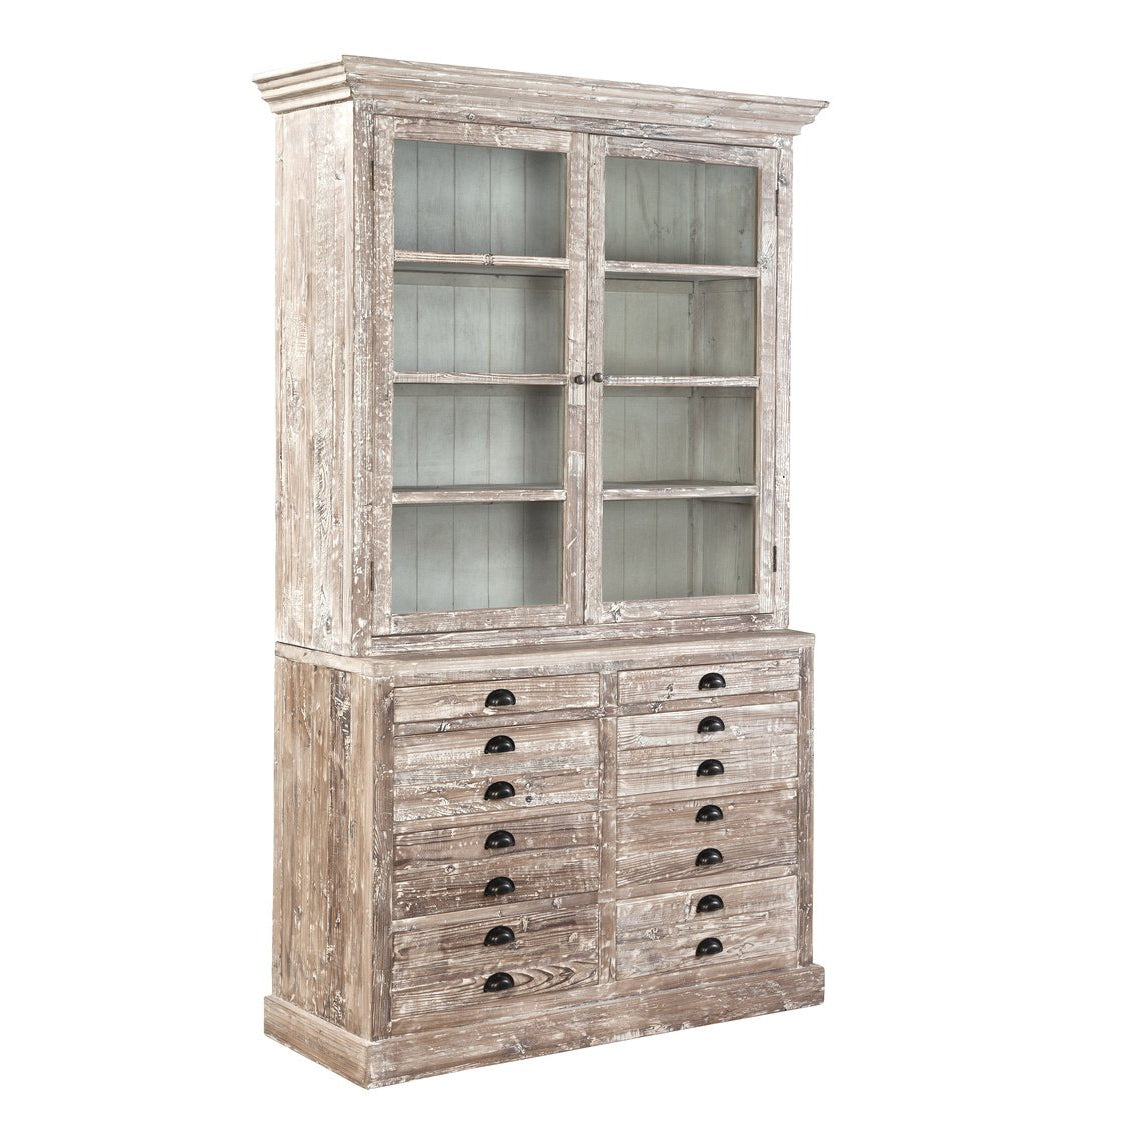 Reclaimed Old Fir Apothecary Bookcase